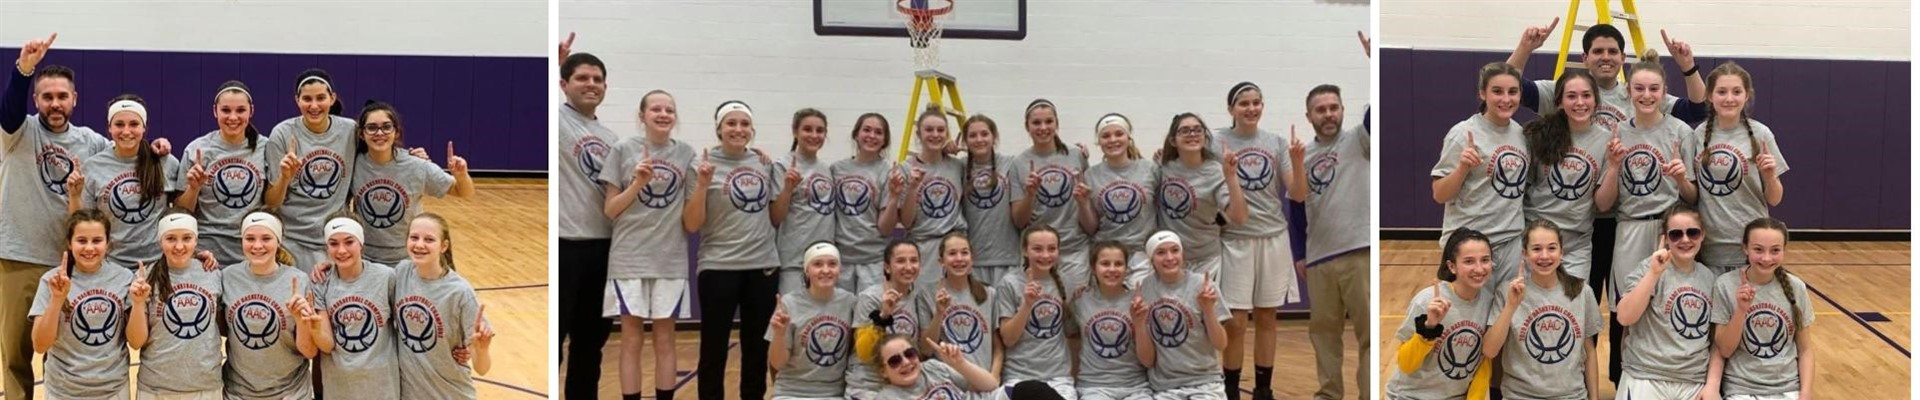 7th and 8th grade girls basketball champions